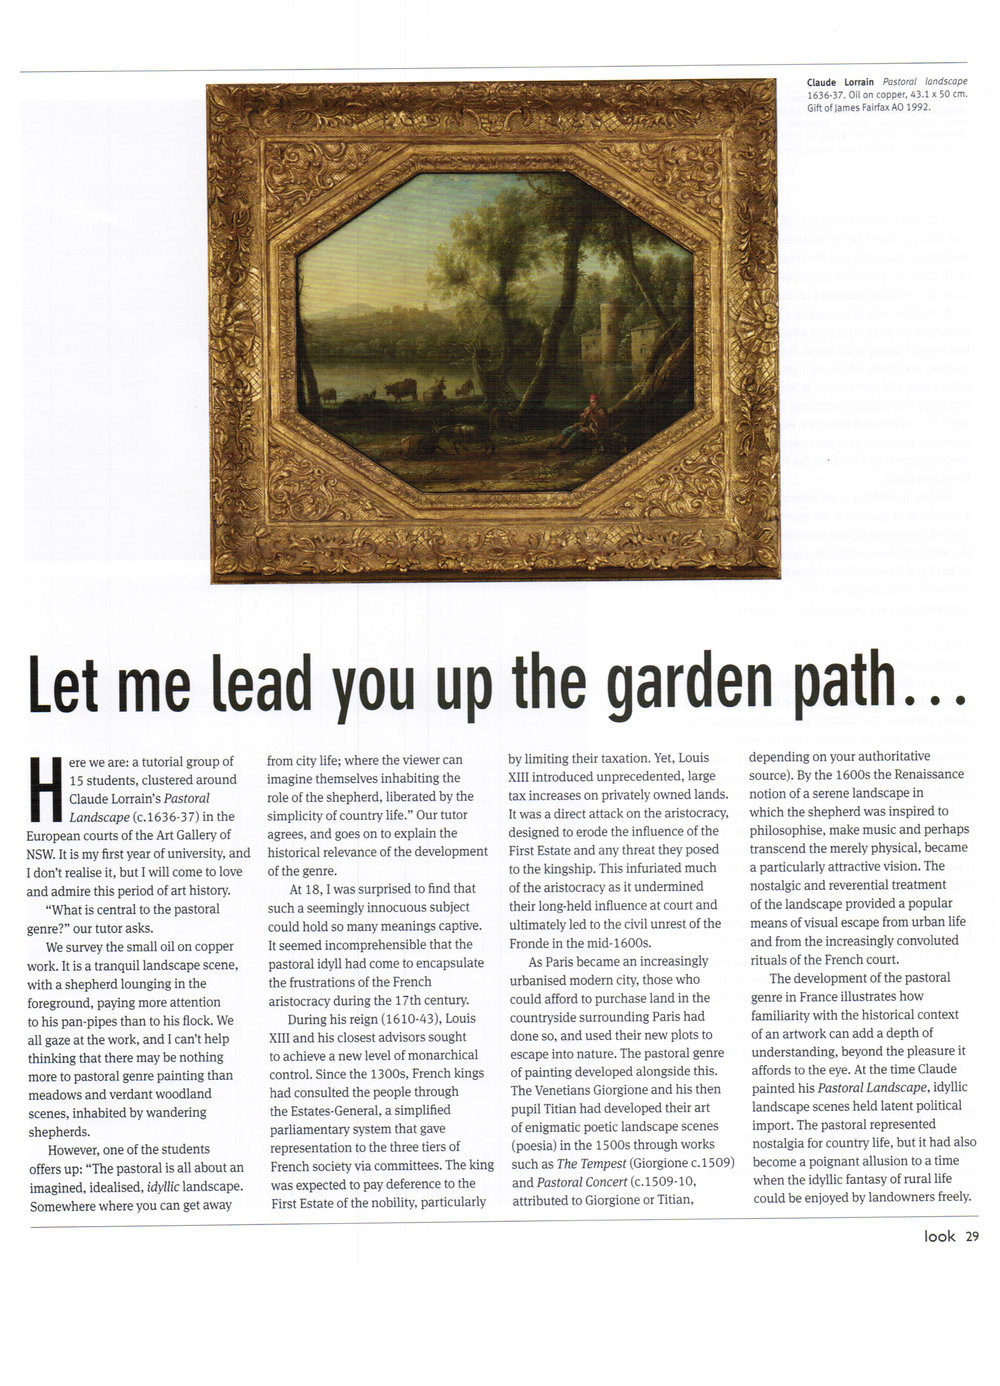 Let Me Lead You Up the Garden Path p1 - Look March 2013